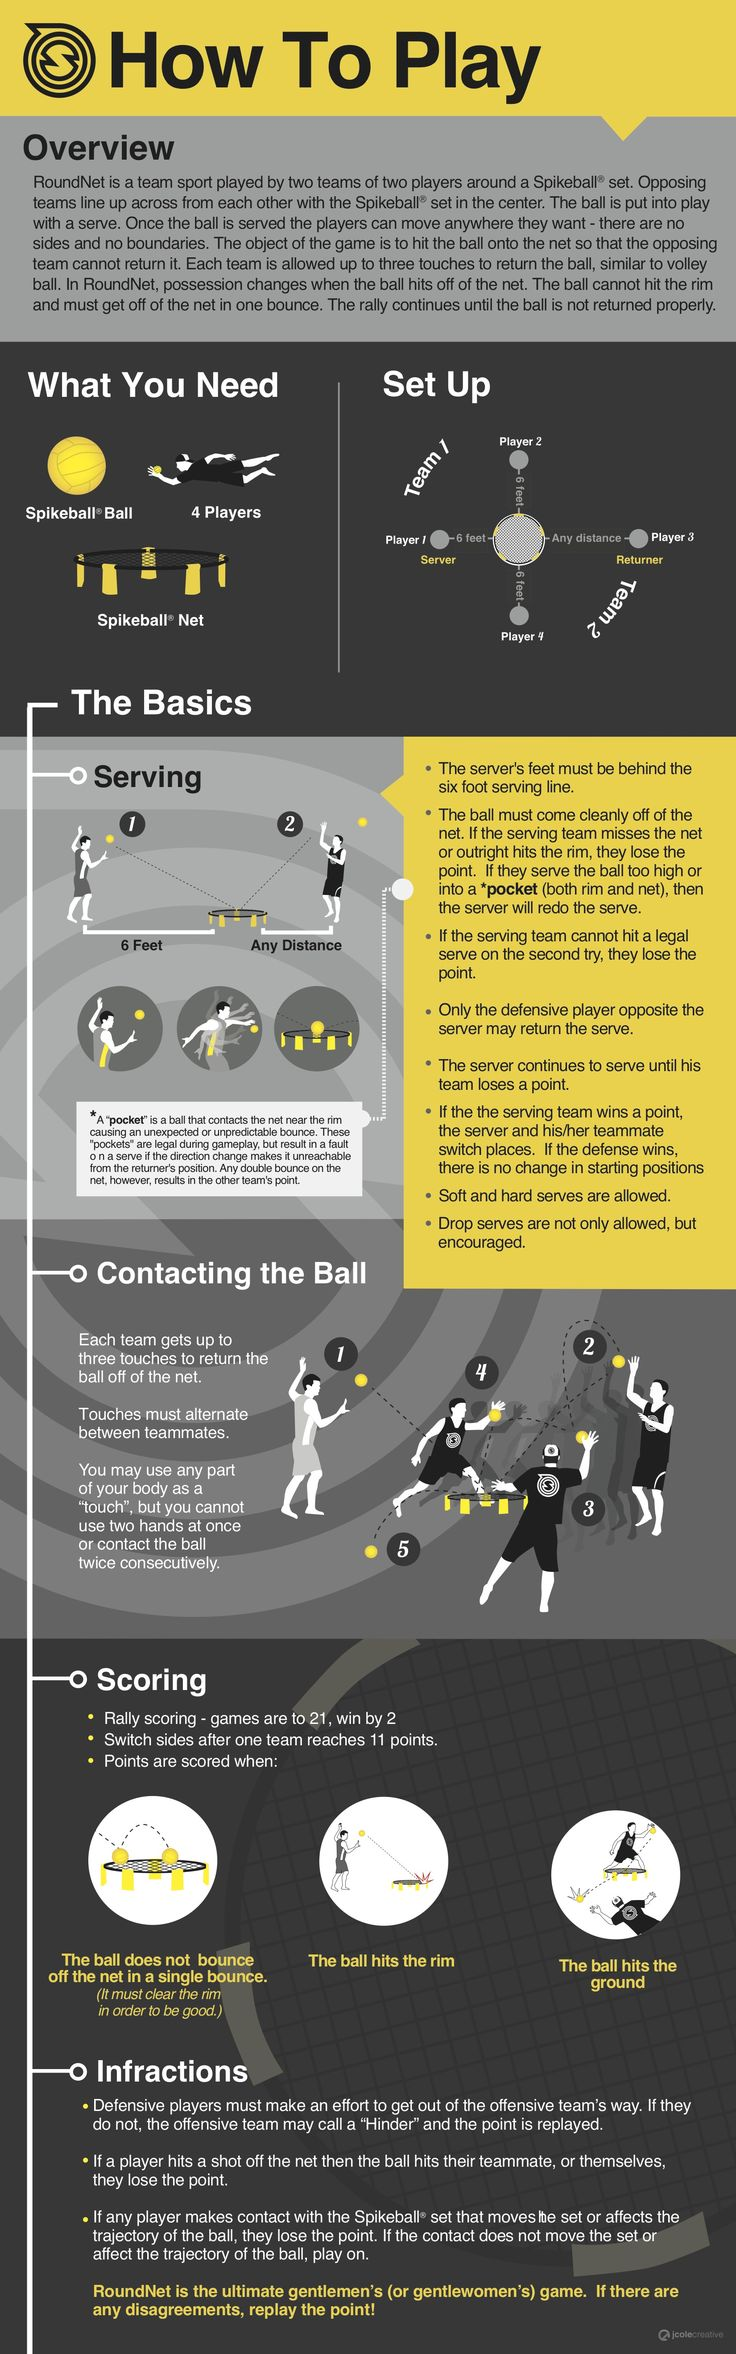 How to Play Spikeball As Seen